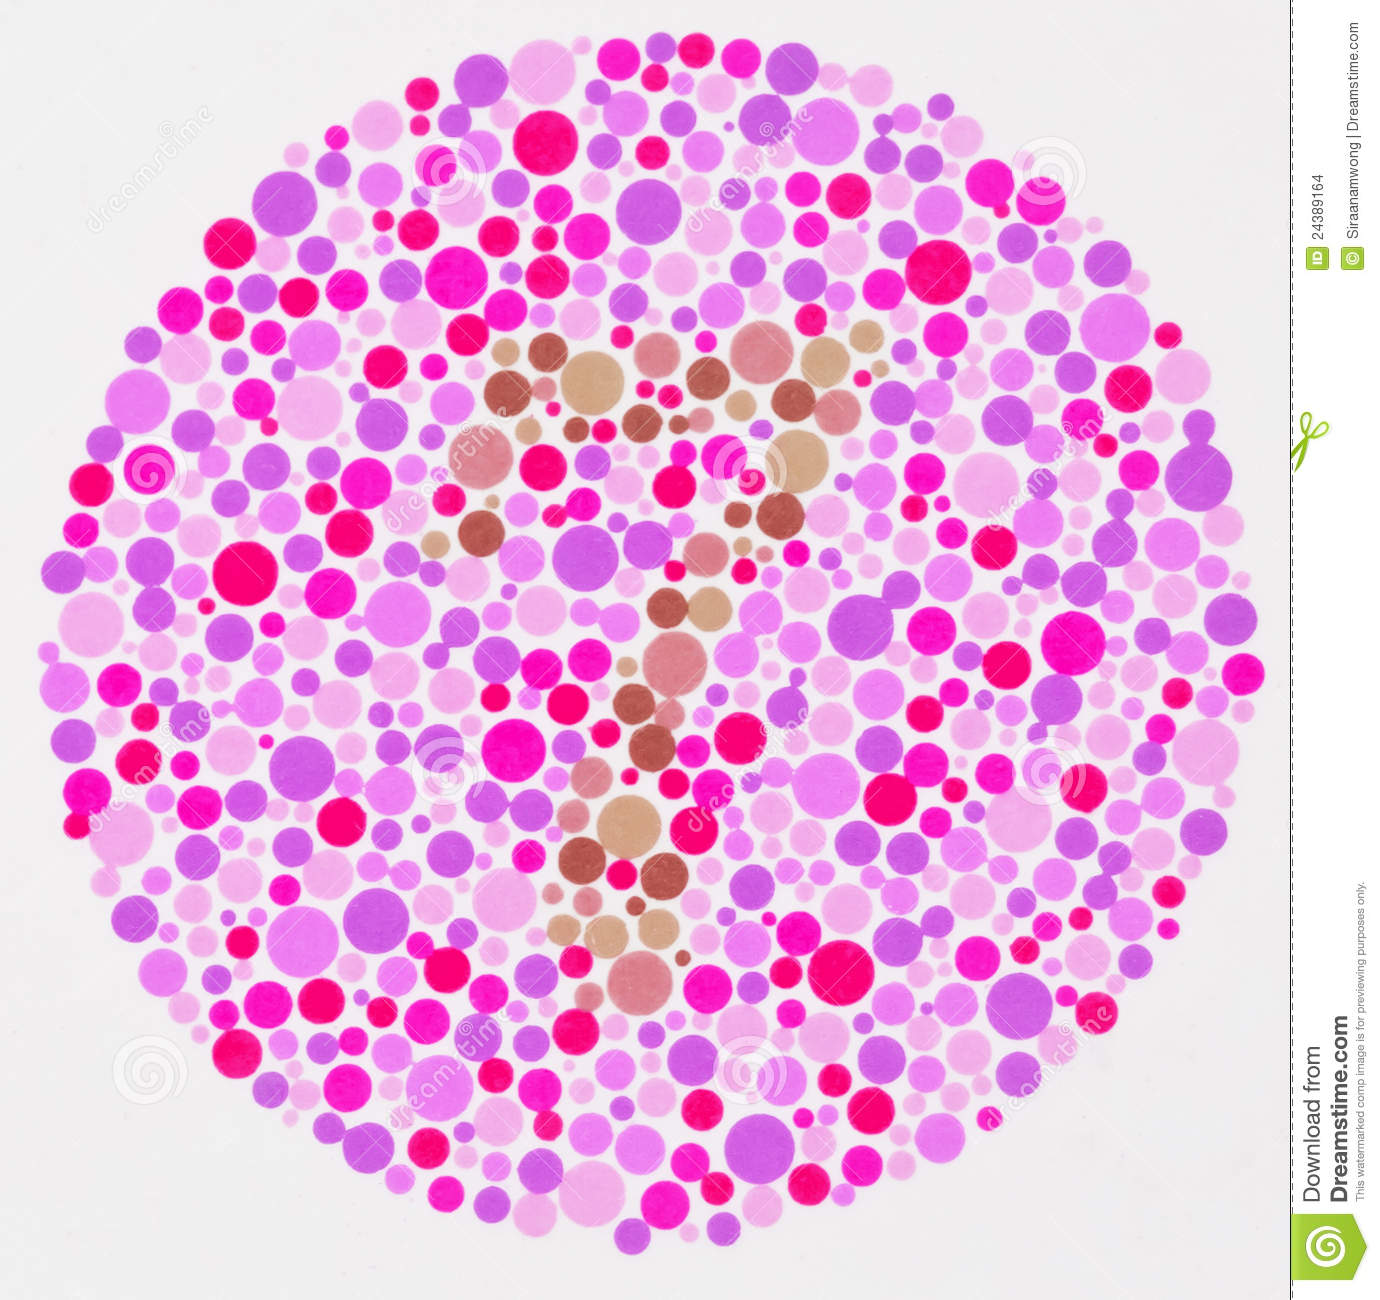 Color blind test - 7 stock photo. Image of look, dots - 24389164